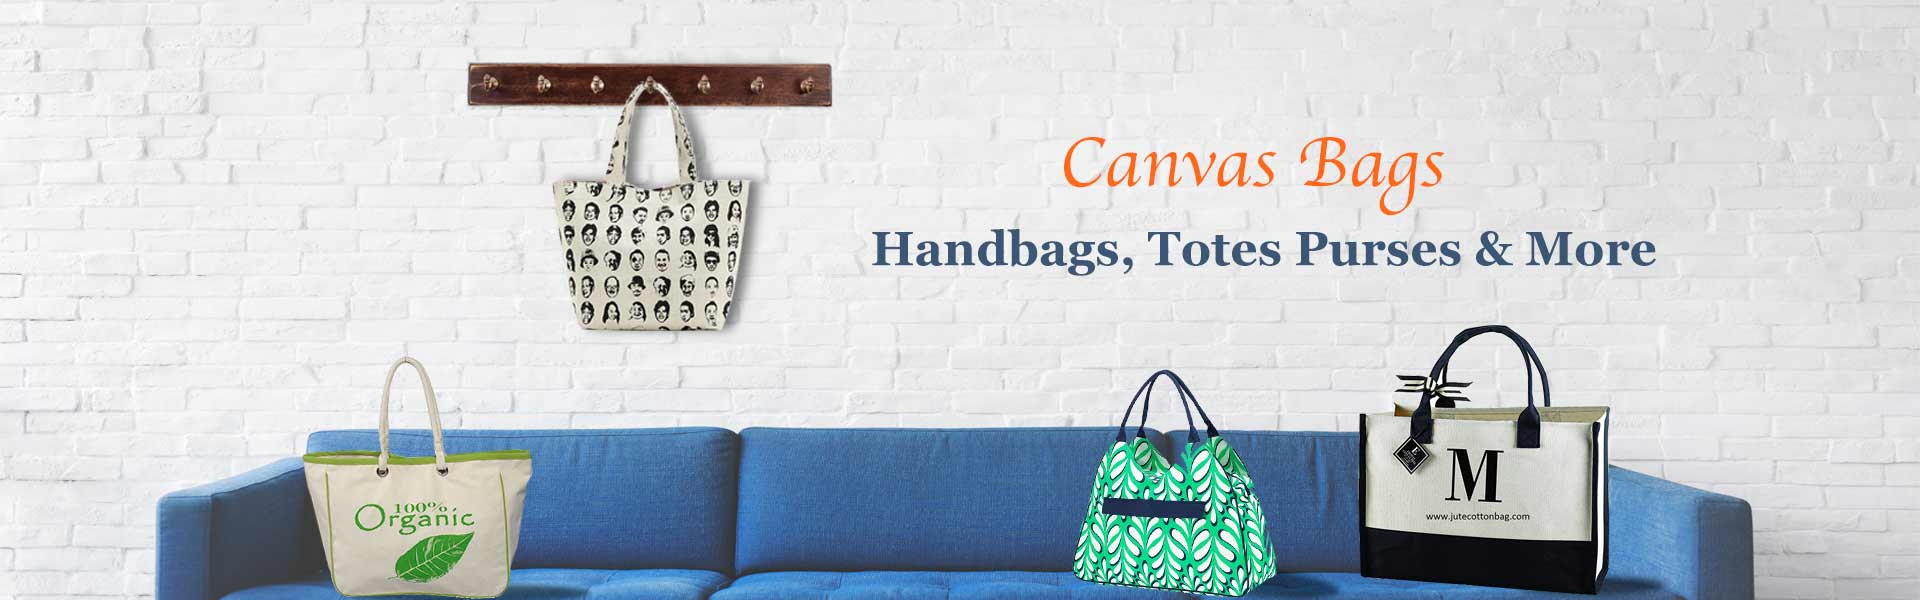 Wholesale Canvas Bags Supplier in Saudi Arabia